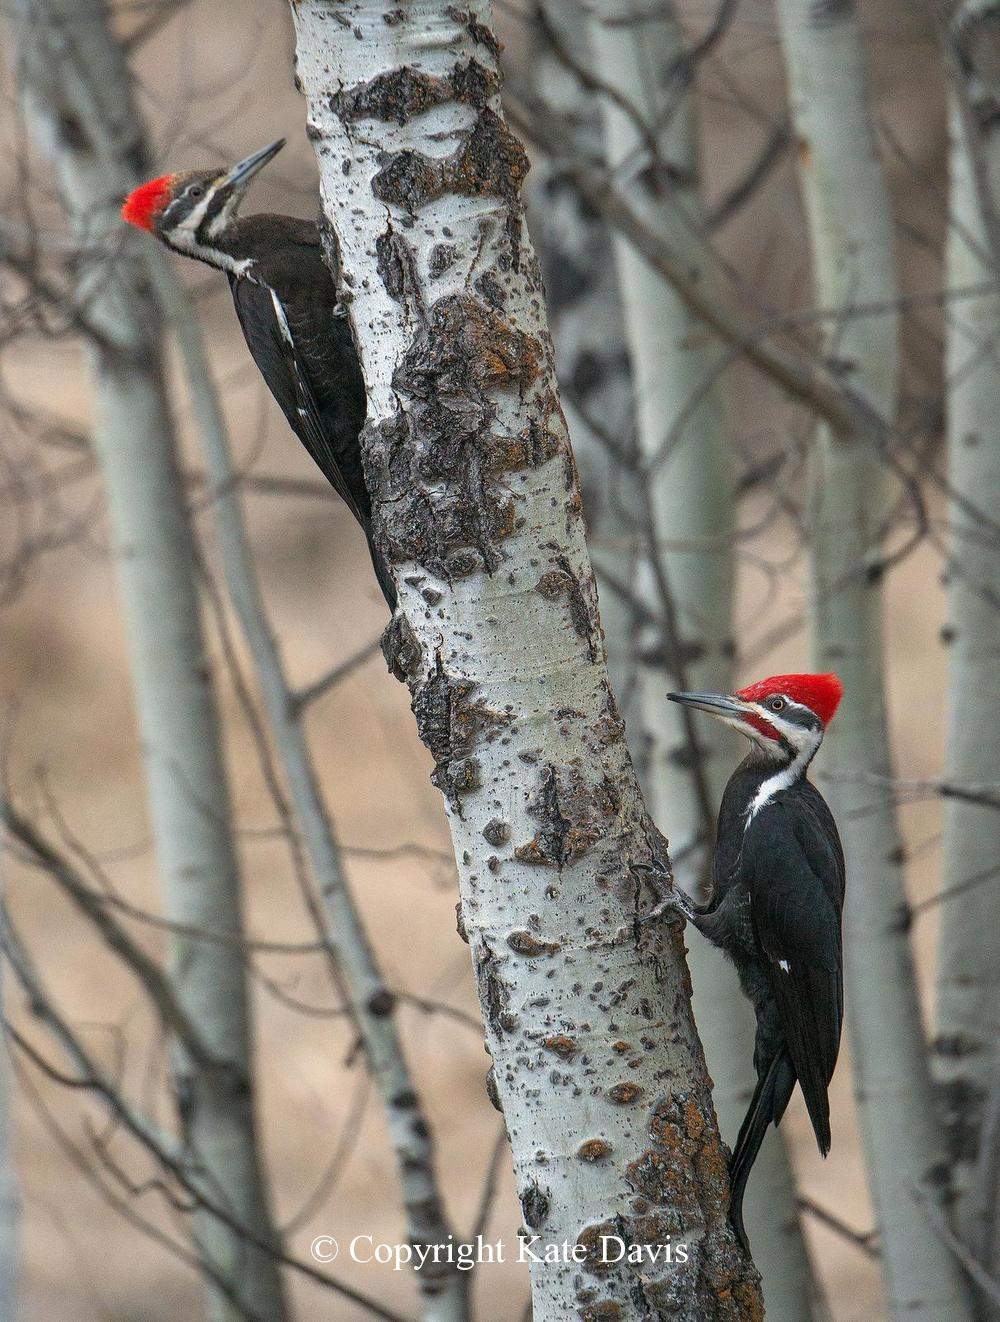 Song Bird Photos - Pileated Pair - Shore Bird Photos - Pileated Woodpecker pair in the front yard, by the suet feeder